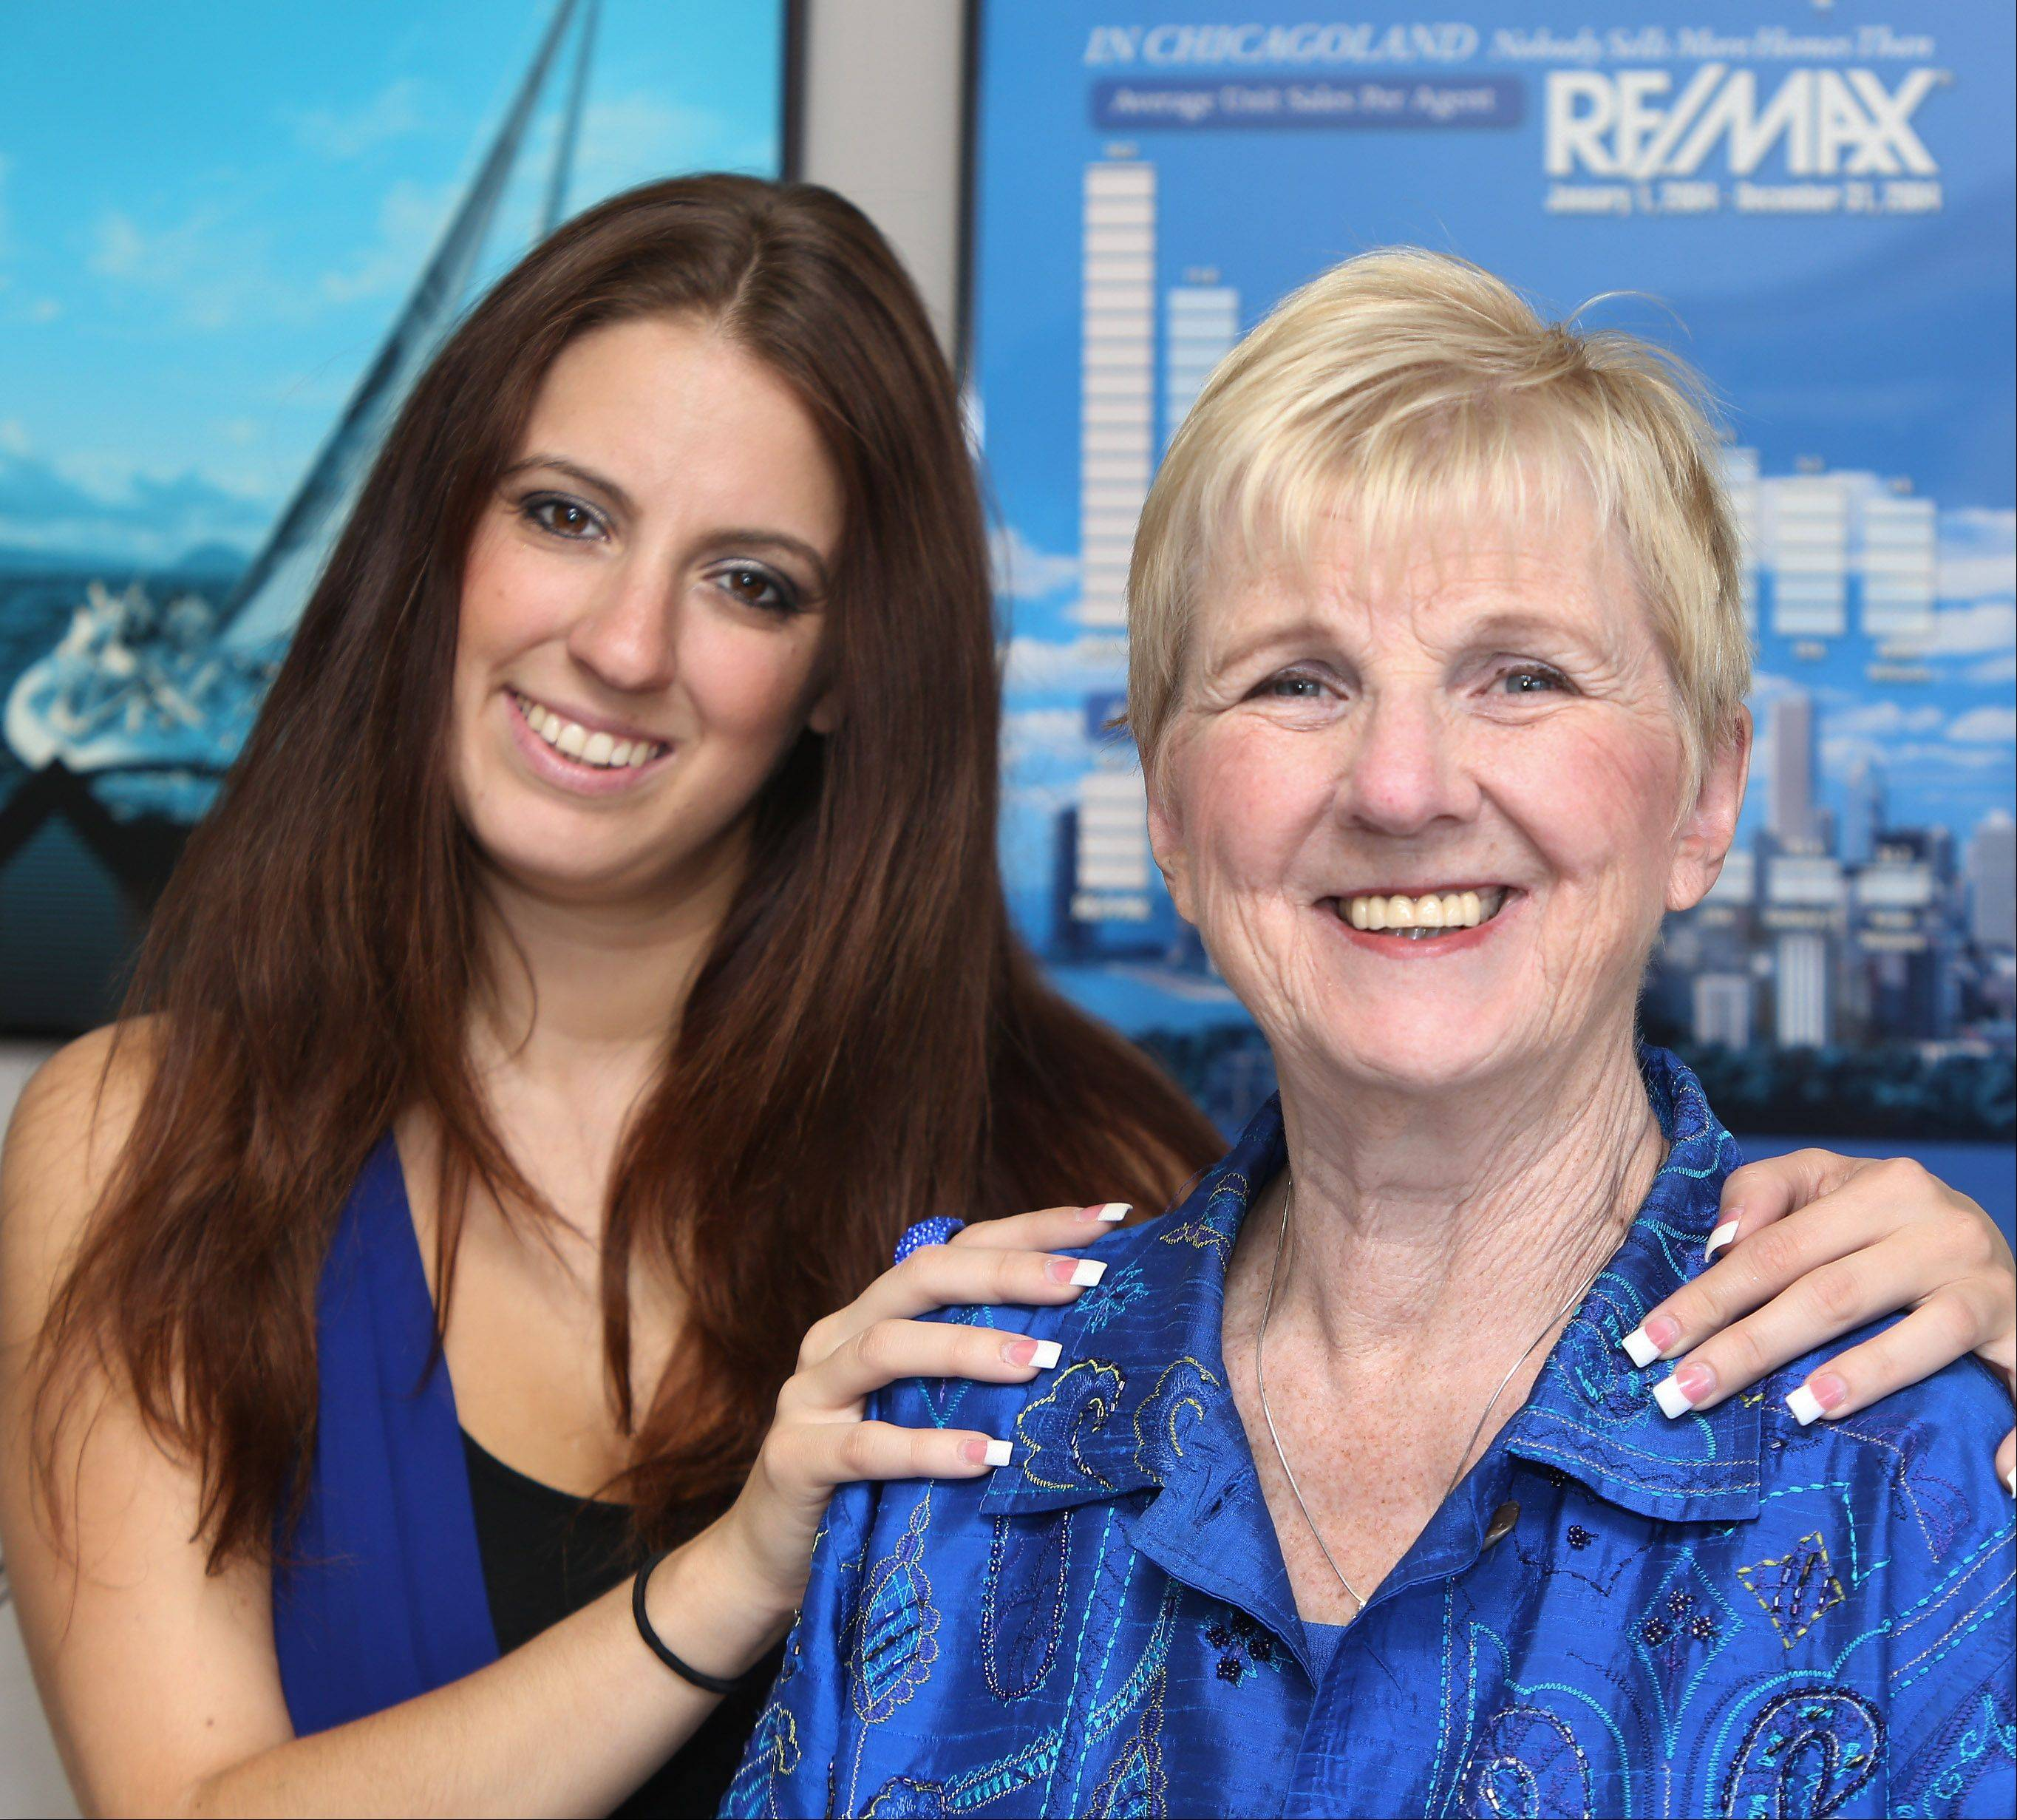 Jennifer Radke, left, followed her mother Donna Radke into the real estate business. They work together at RE/MAX Center in Grayslake.